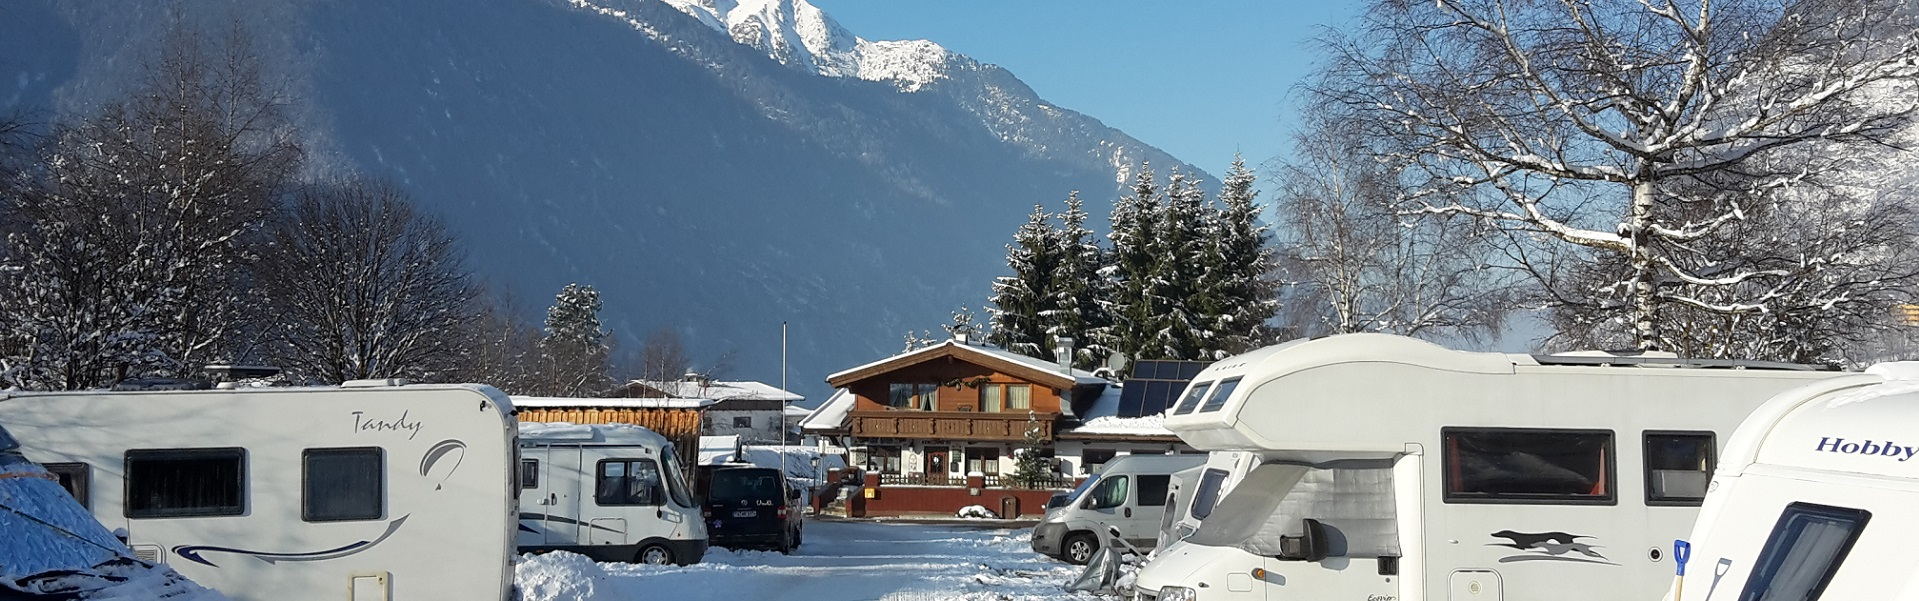 Camping Oetztal Winter